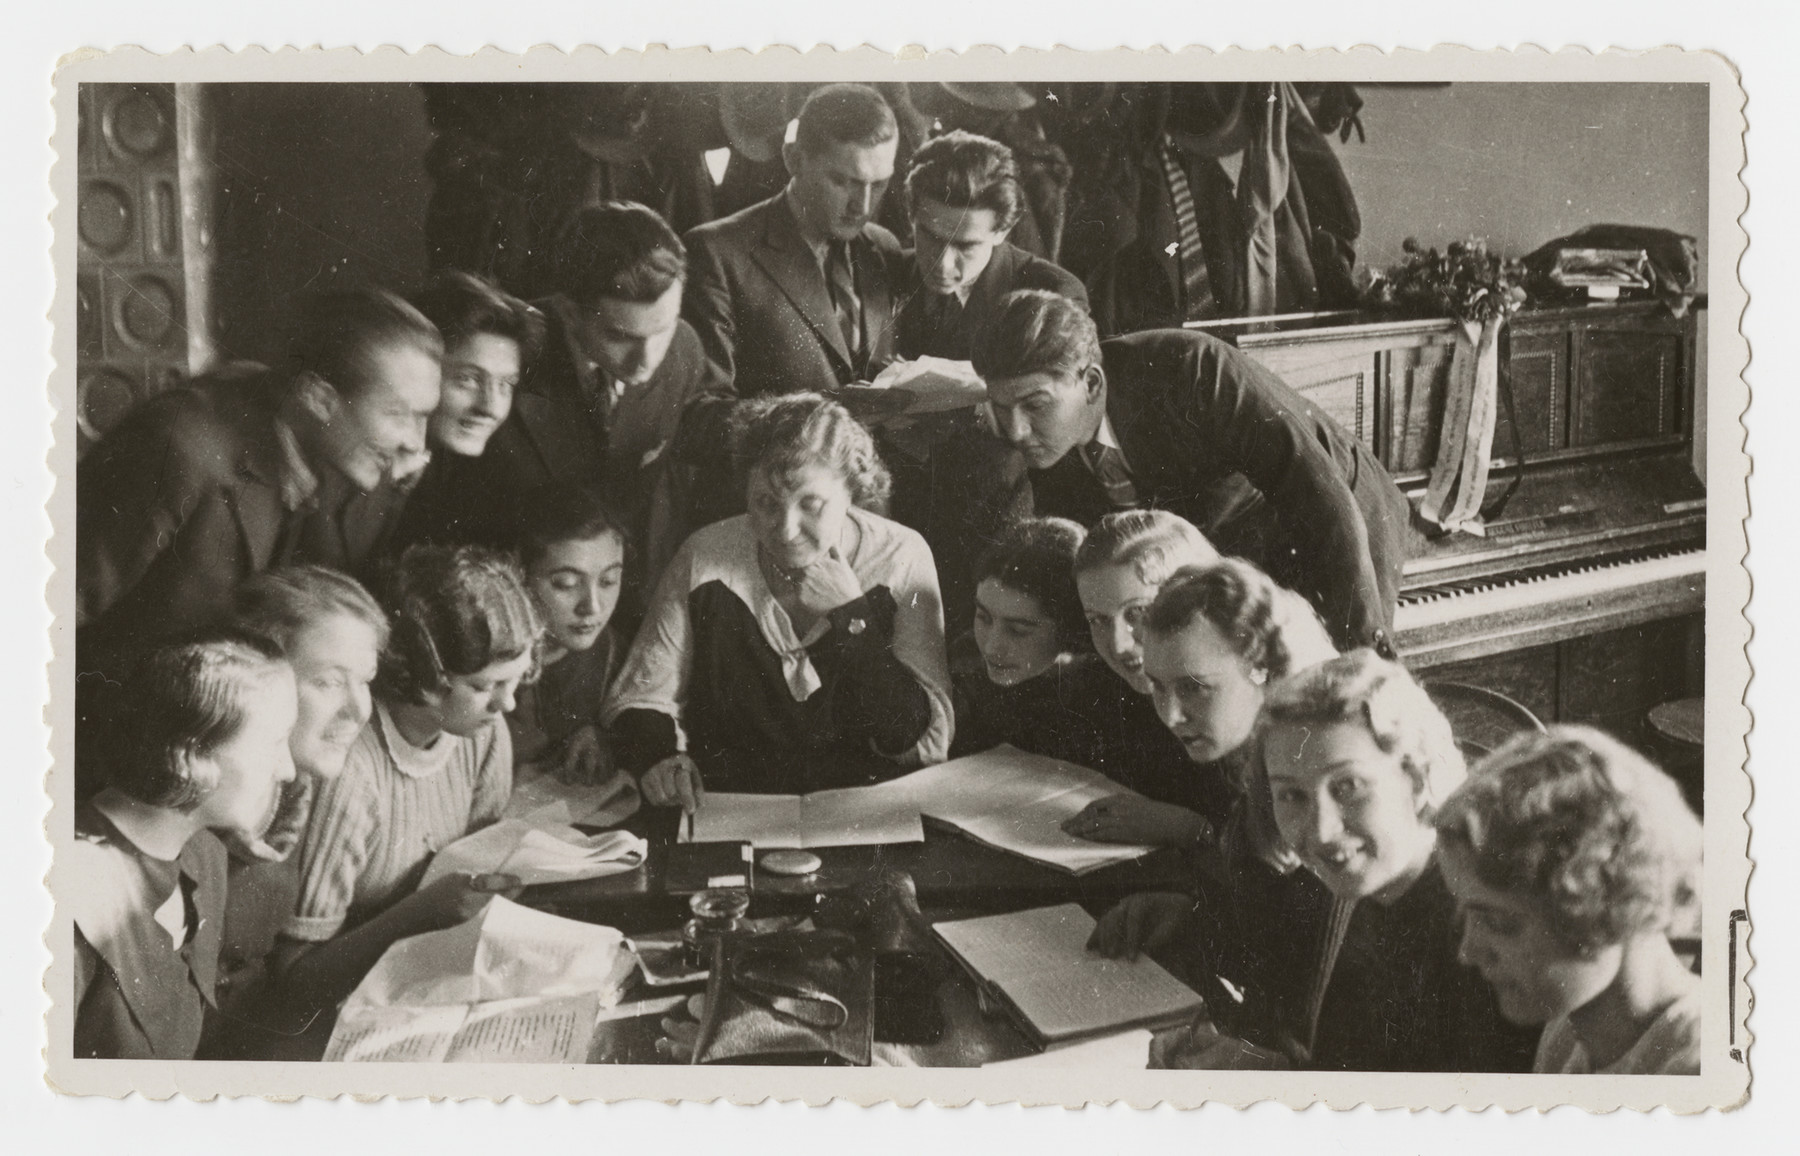 Students at the drama conservatory in Prague gather around a table.  Jan Sebor (Erwin Schwalb) is pictured standing third from the left.)